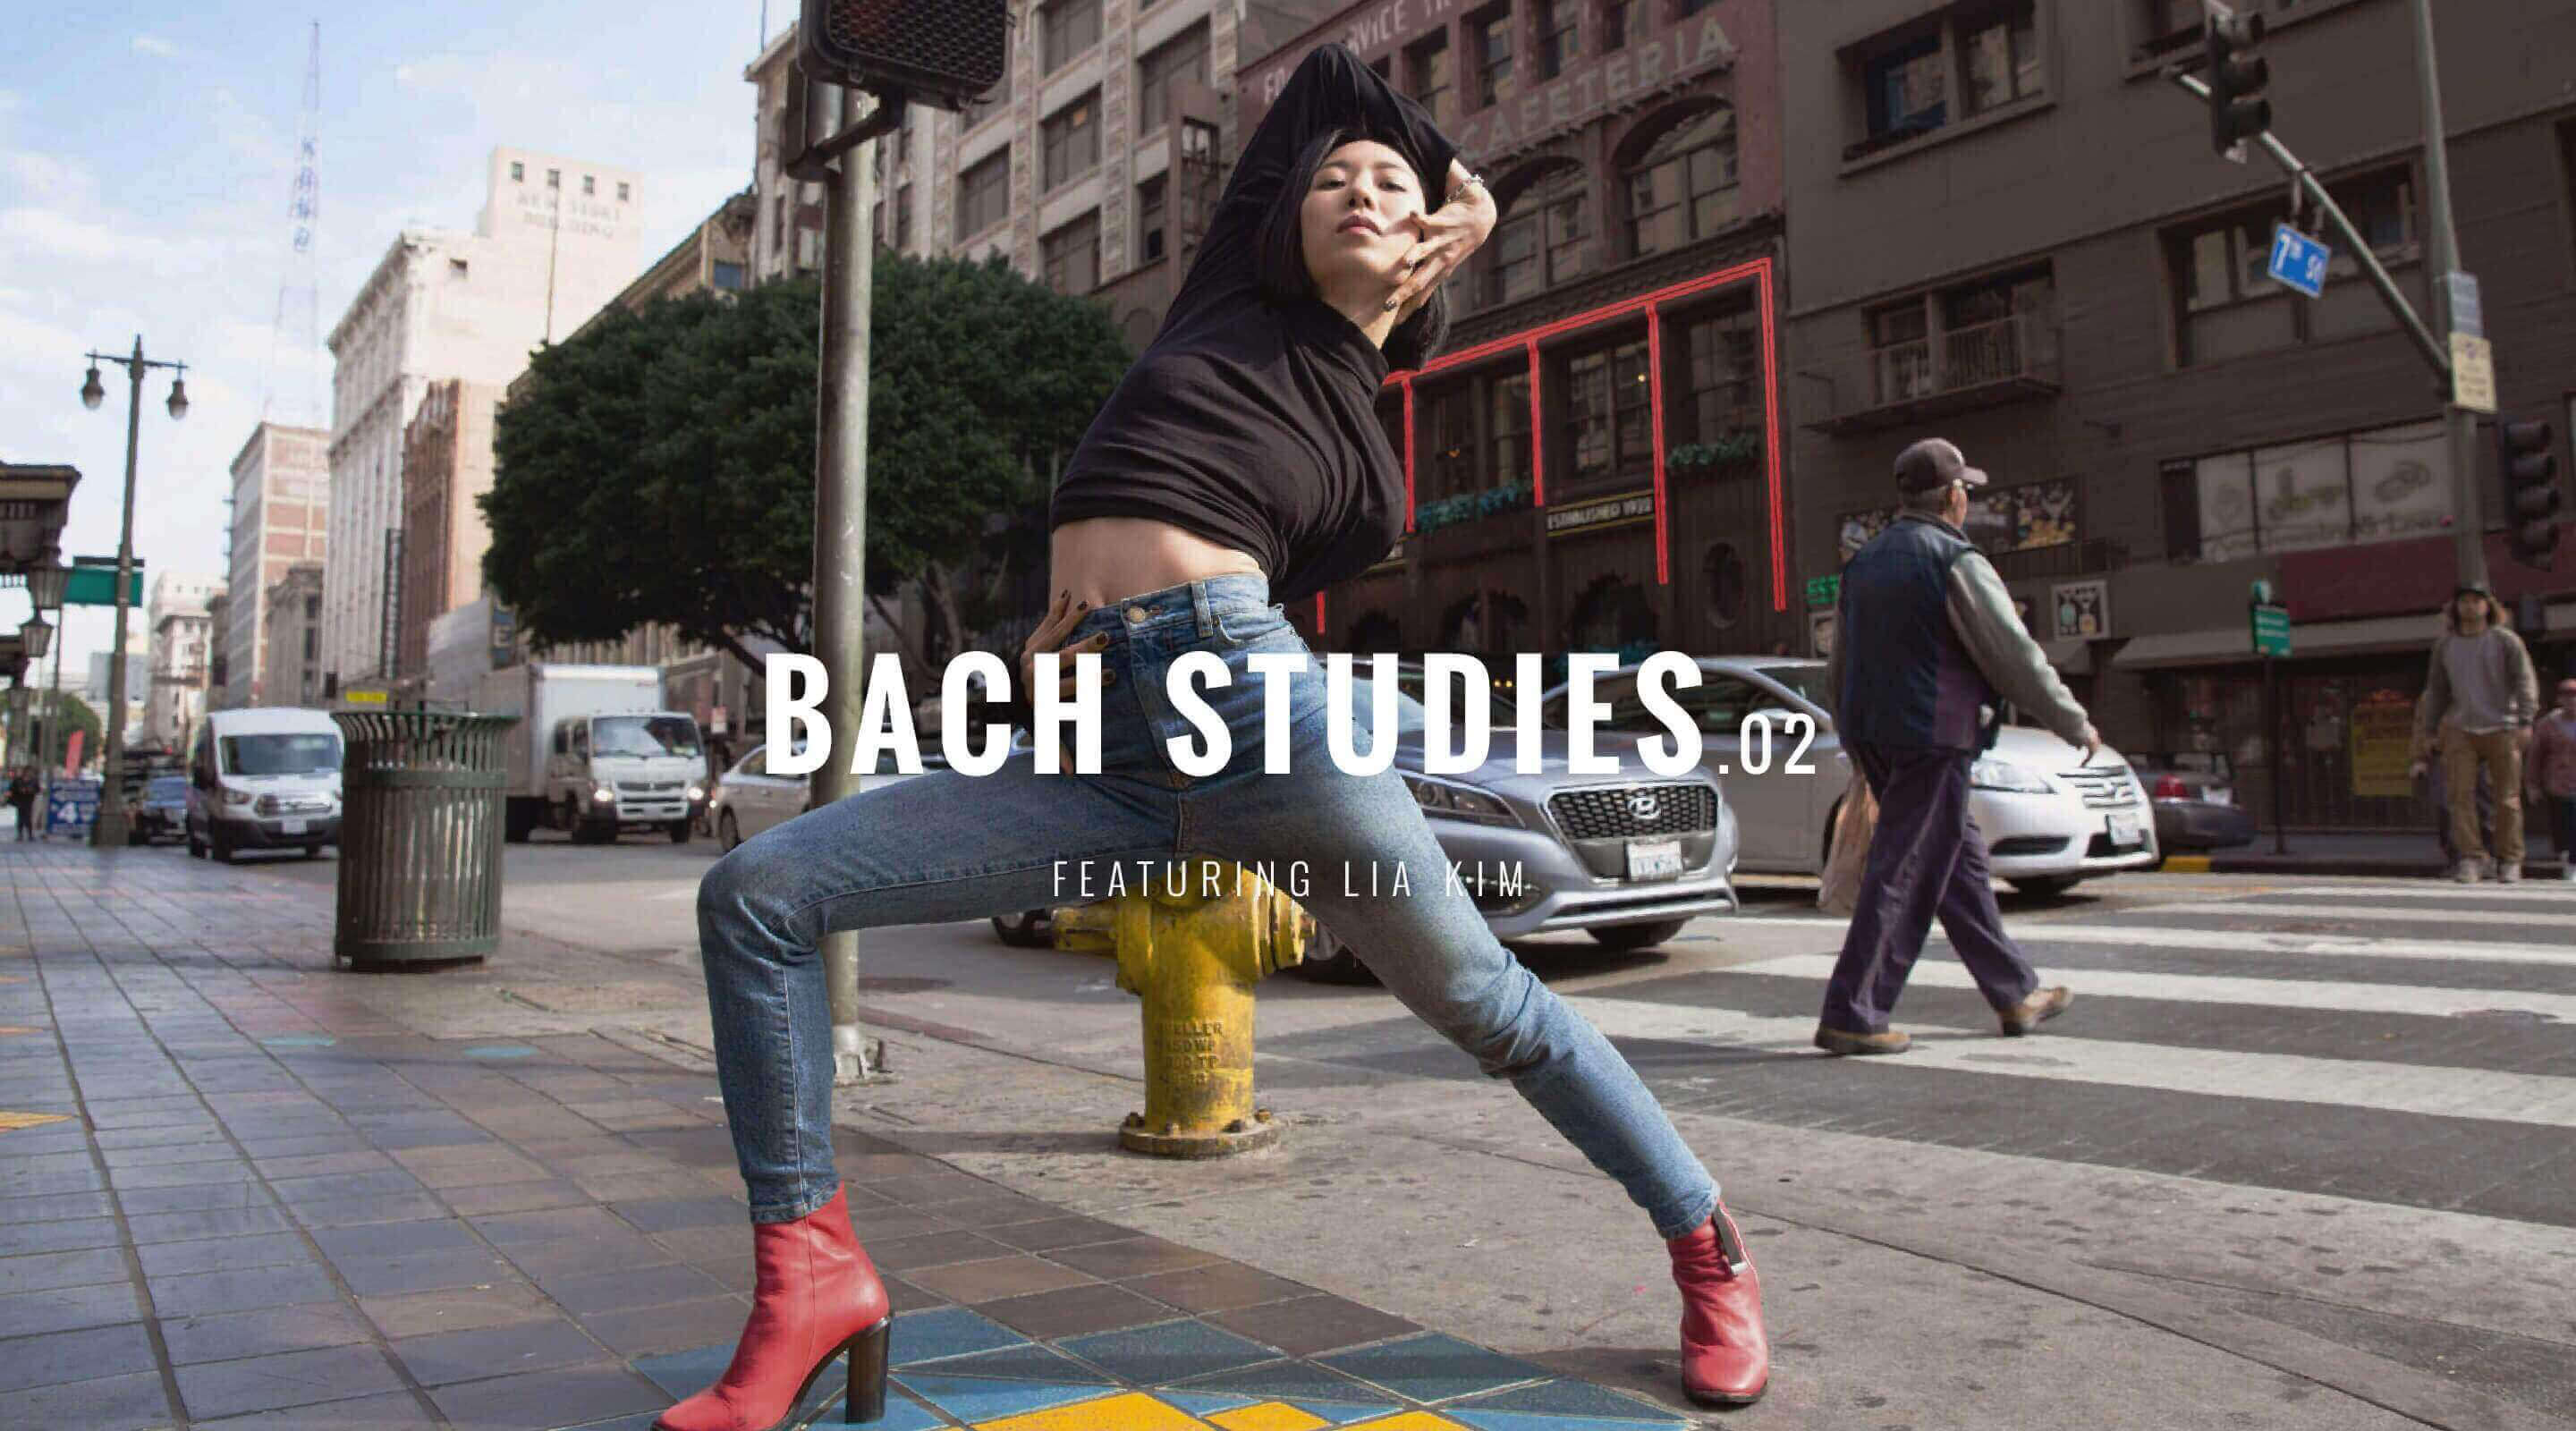 Bach studies.02 Featuring Lia Kim